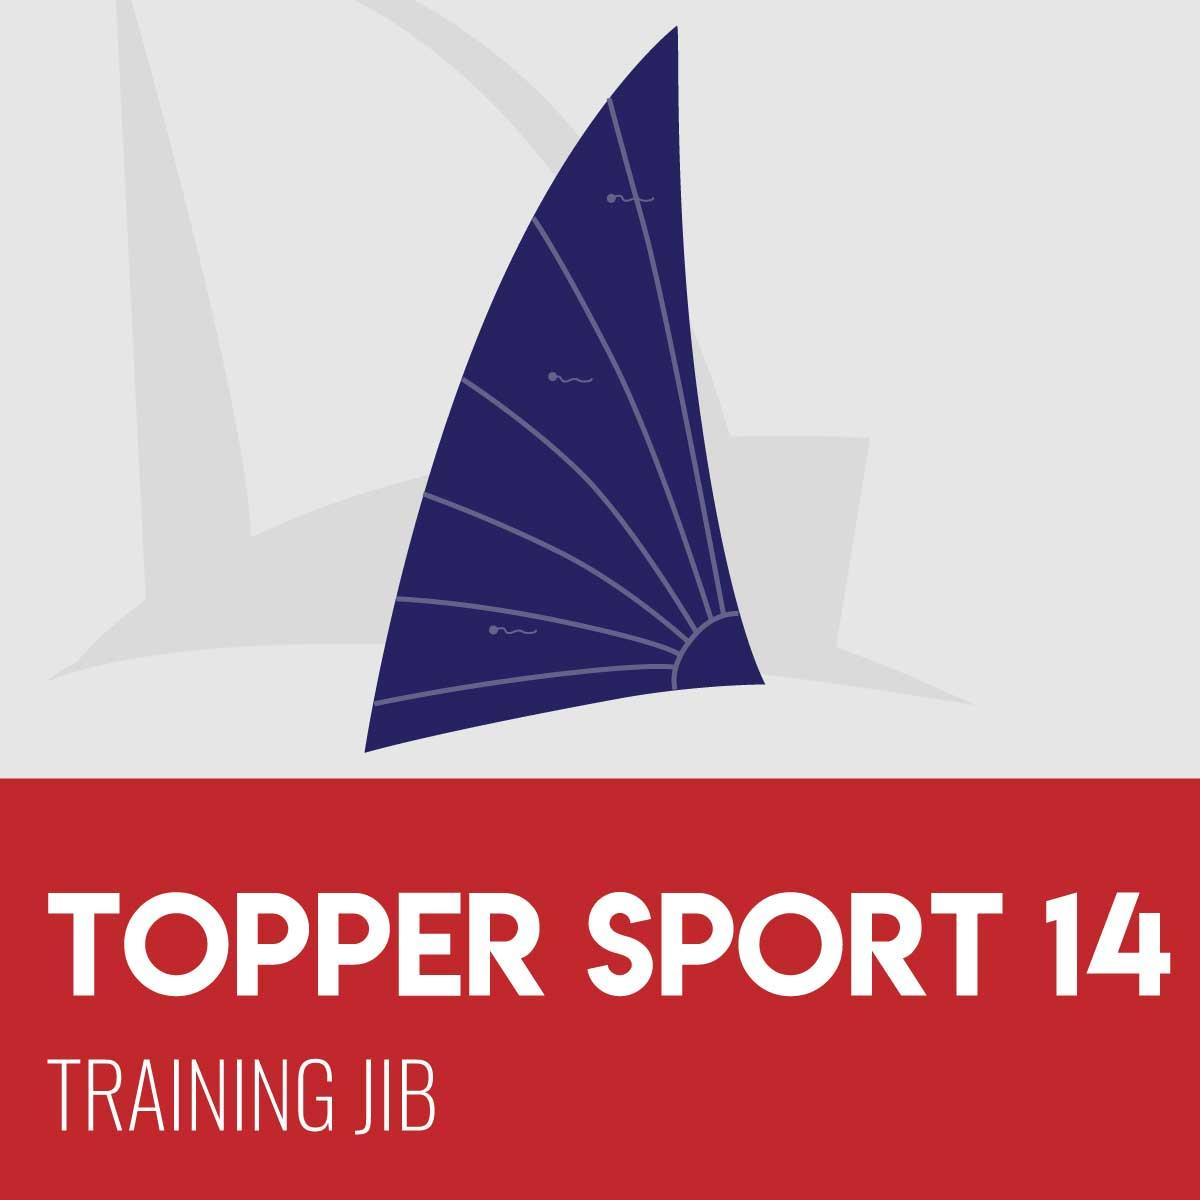 Topper Sport 14 Training Jib